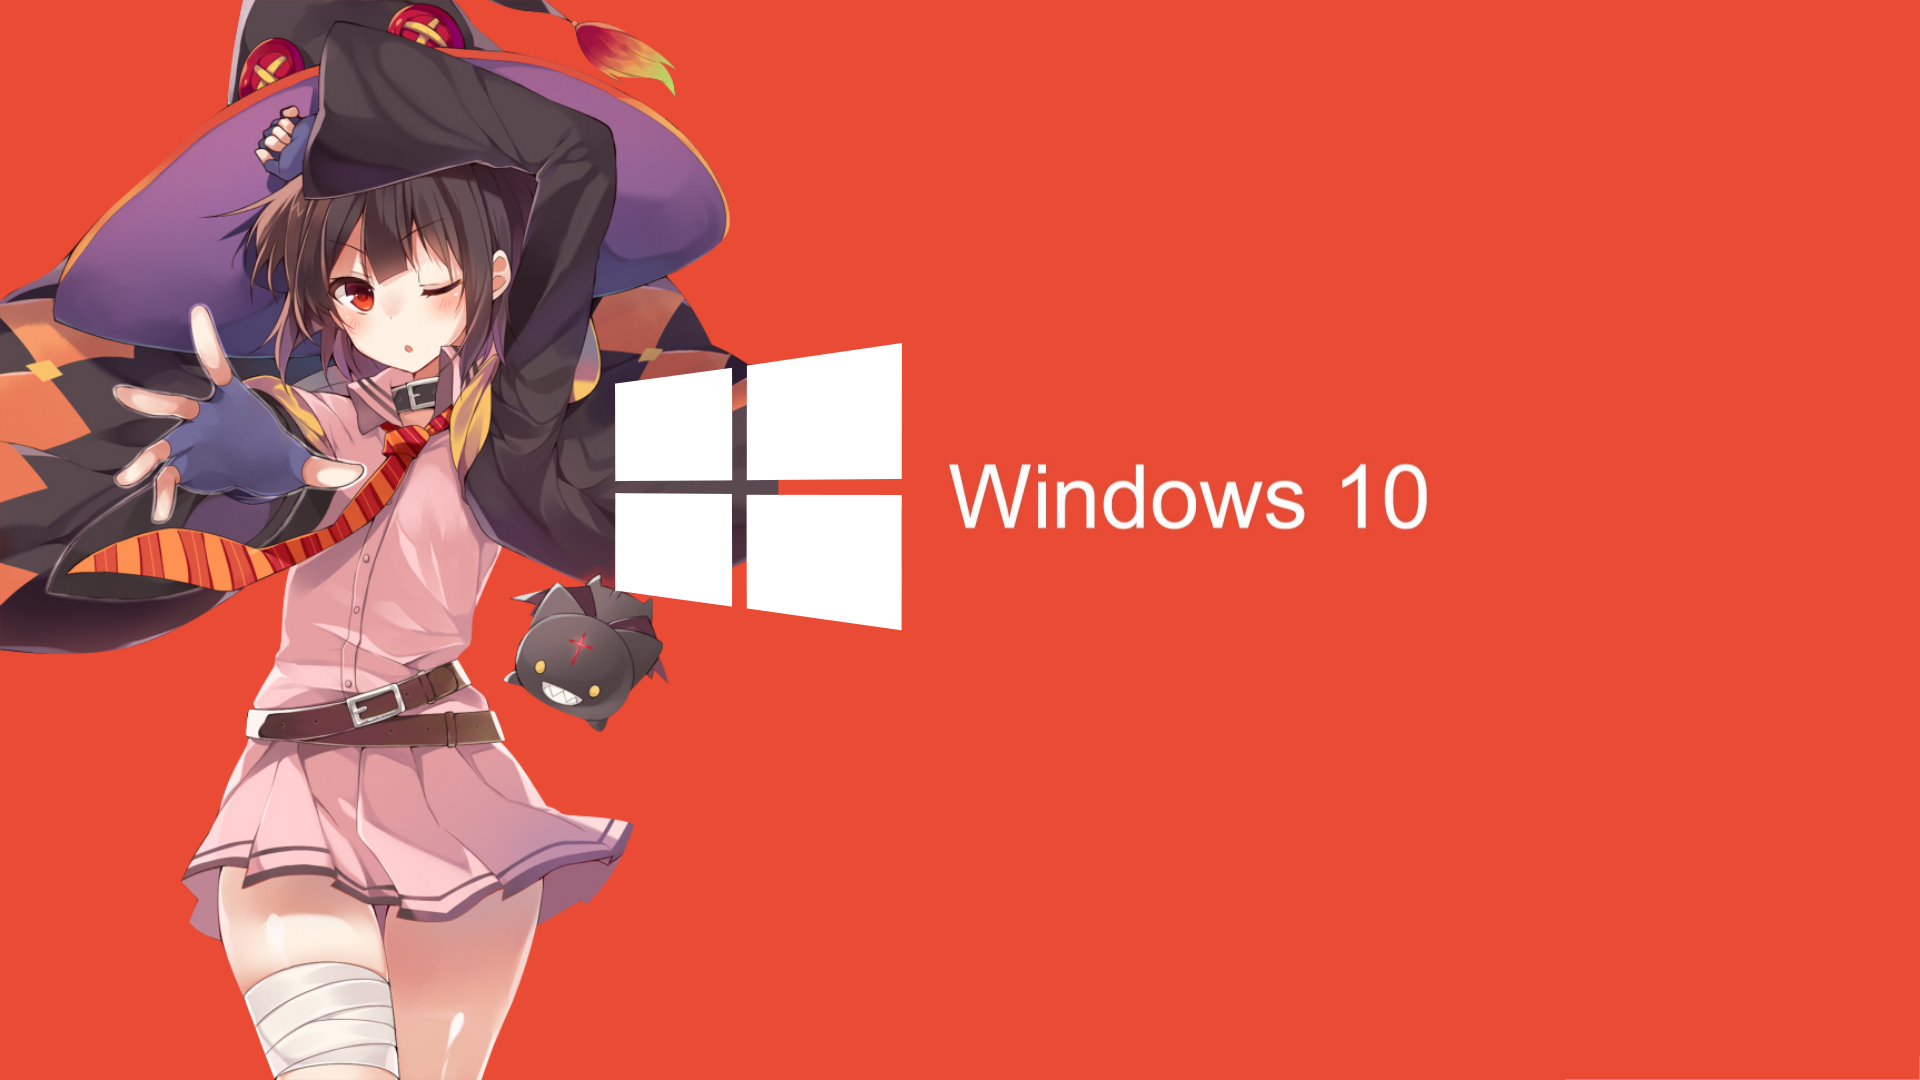 Windows 10 Wallpaper Anime Mywallpapers Site In 2020 Anime Windows 10 Wallpaper Windows 10